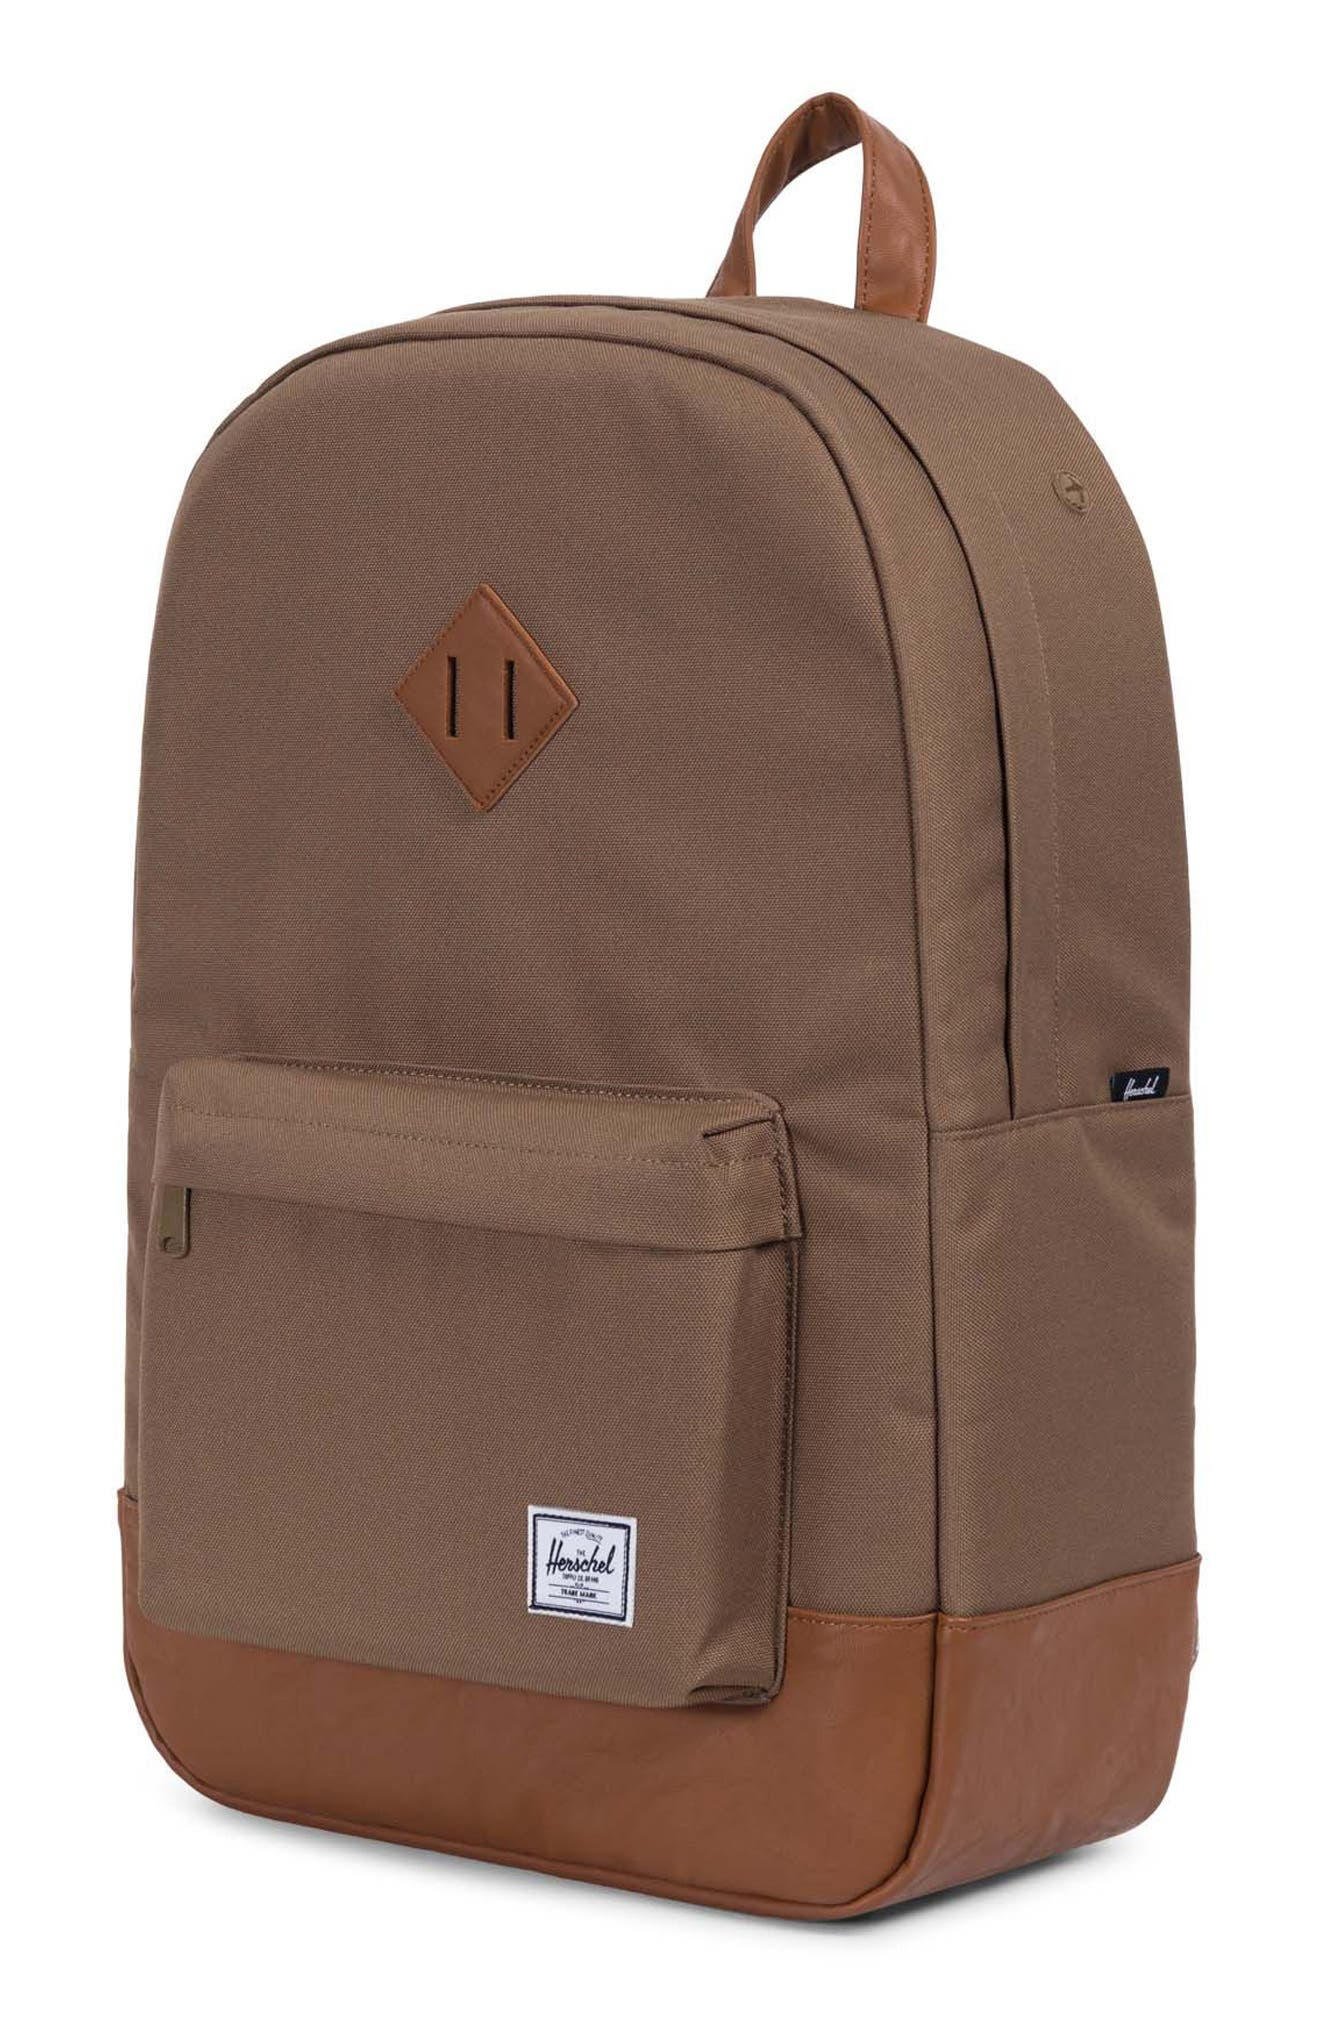 Heritage Backpack,                             Alternate thumbnail 4, color,                             Cub/ Tan